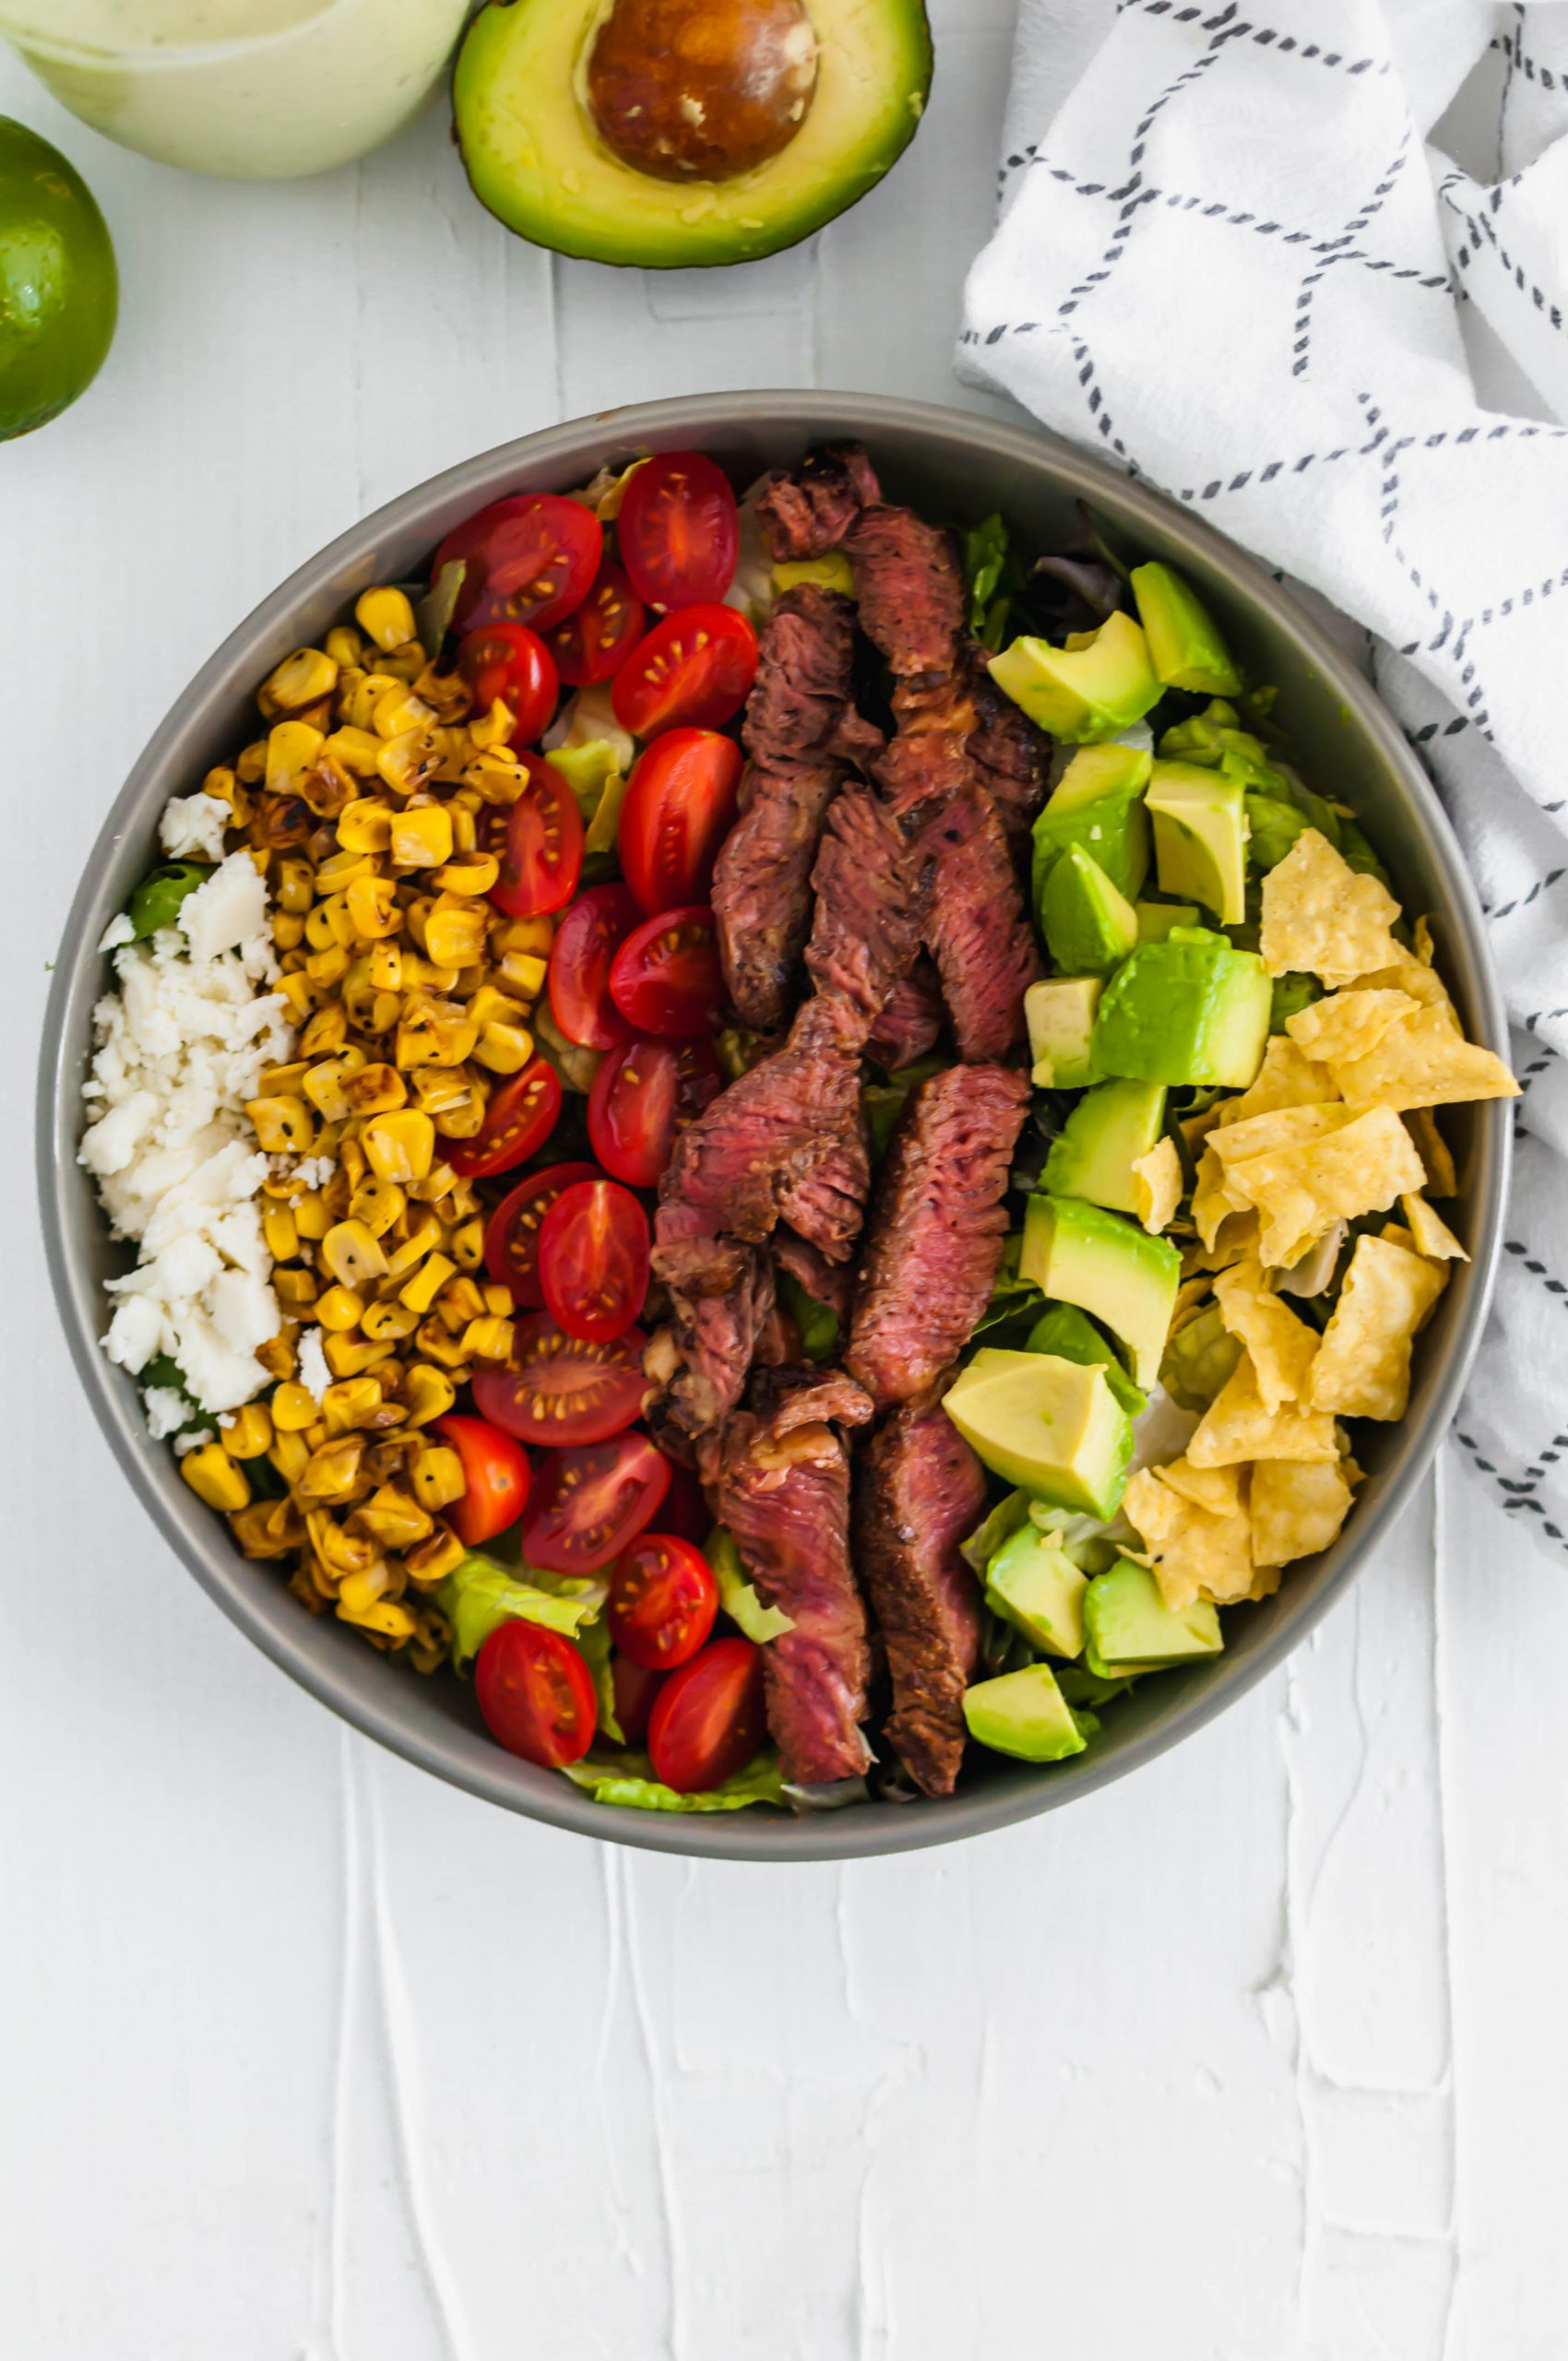 This Southwest Steak Salad is the ultimate summer salad. Packed with grilled steak, charred corn, avocado, crumbled queso fresco, tomatoes and crushed tortilla chips.